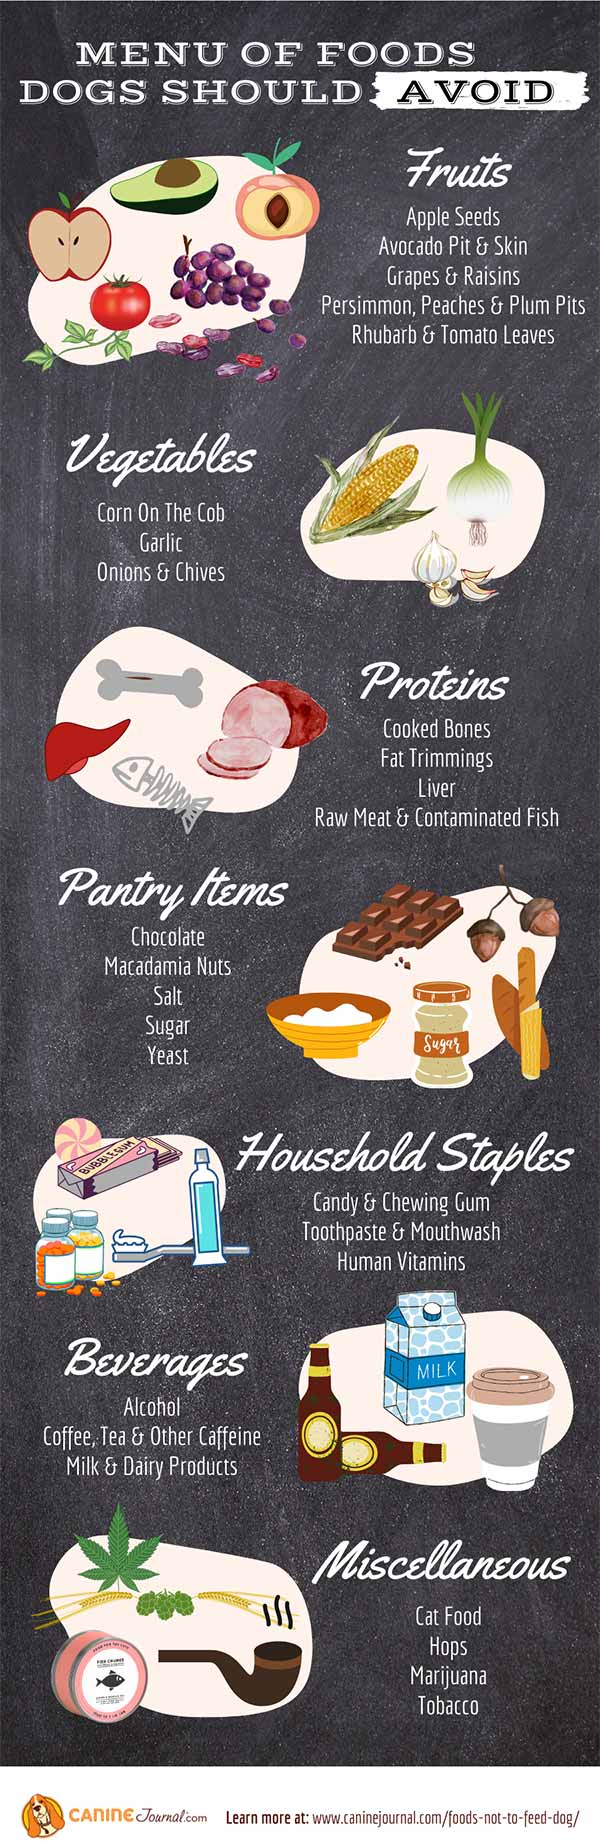 Infographic: The Menu Of Foods Not To Feed Dogs